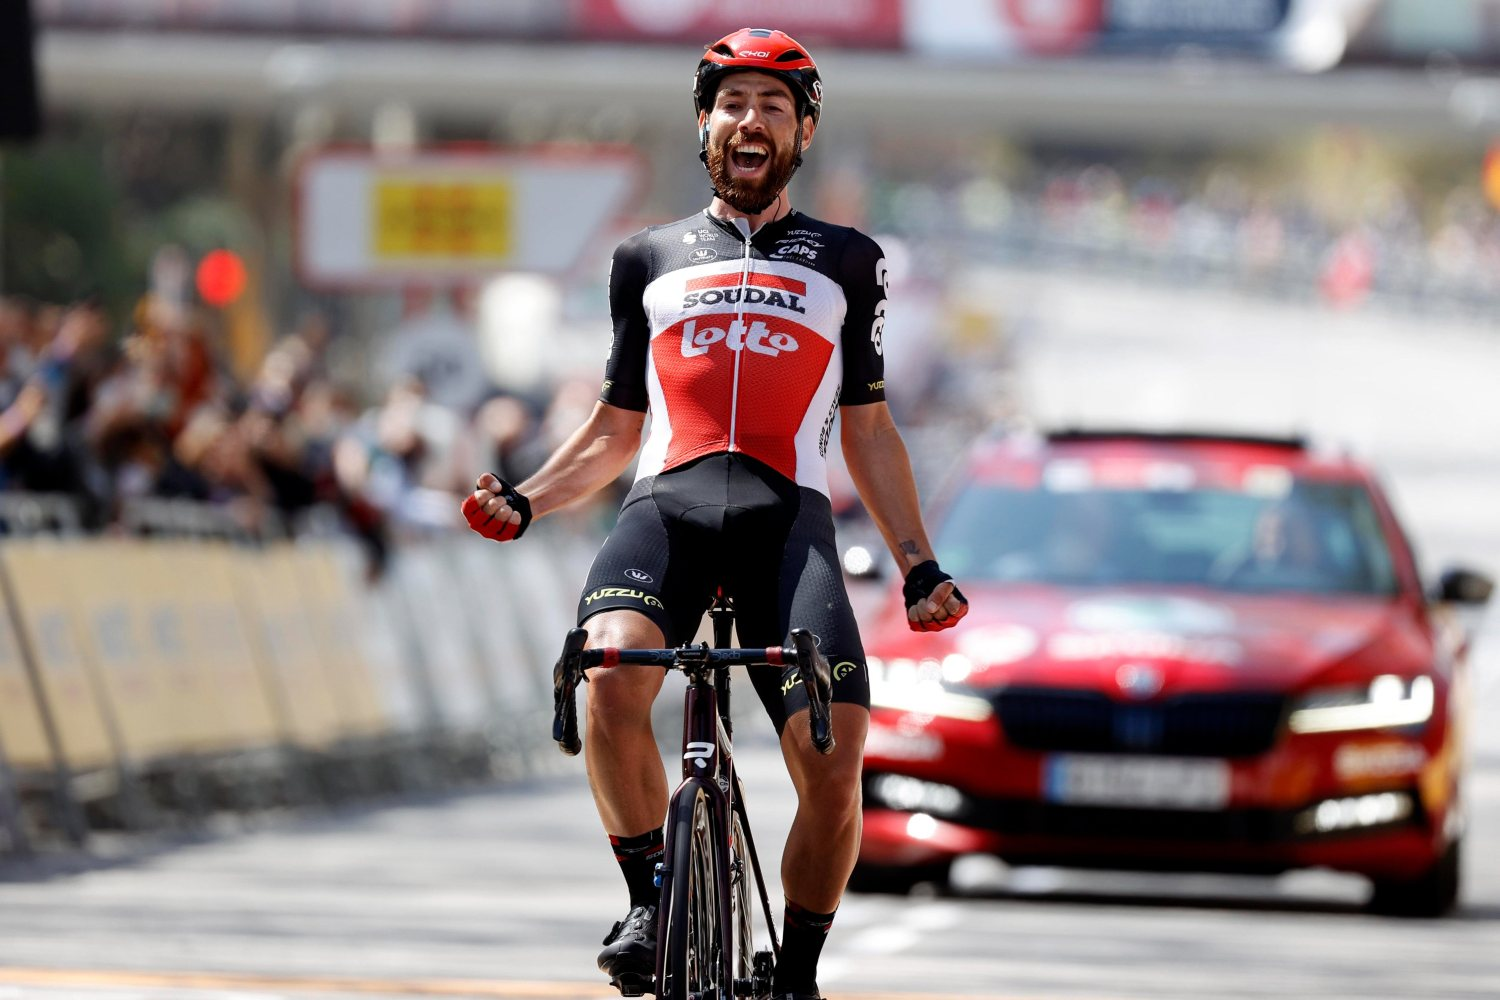 Thomas De Gendt ganó la séptima etapa de la Volta a Cataluña 2021 (Photo News)